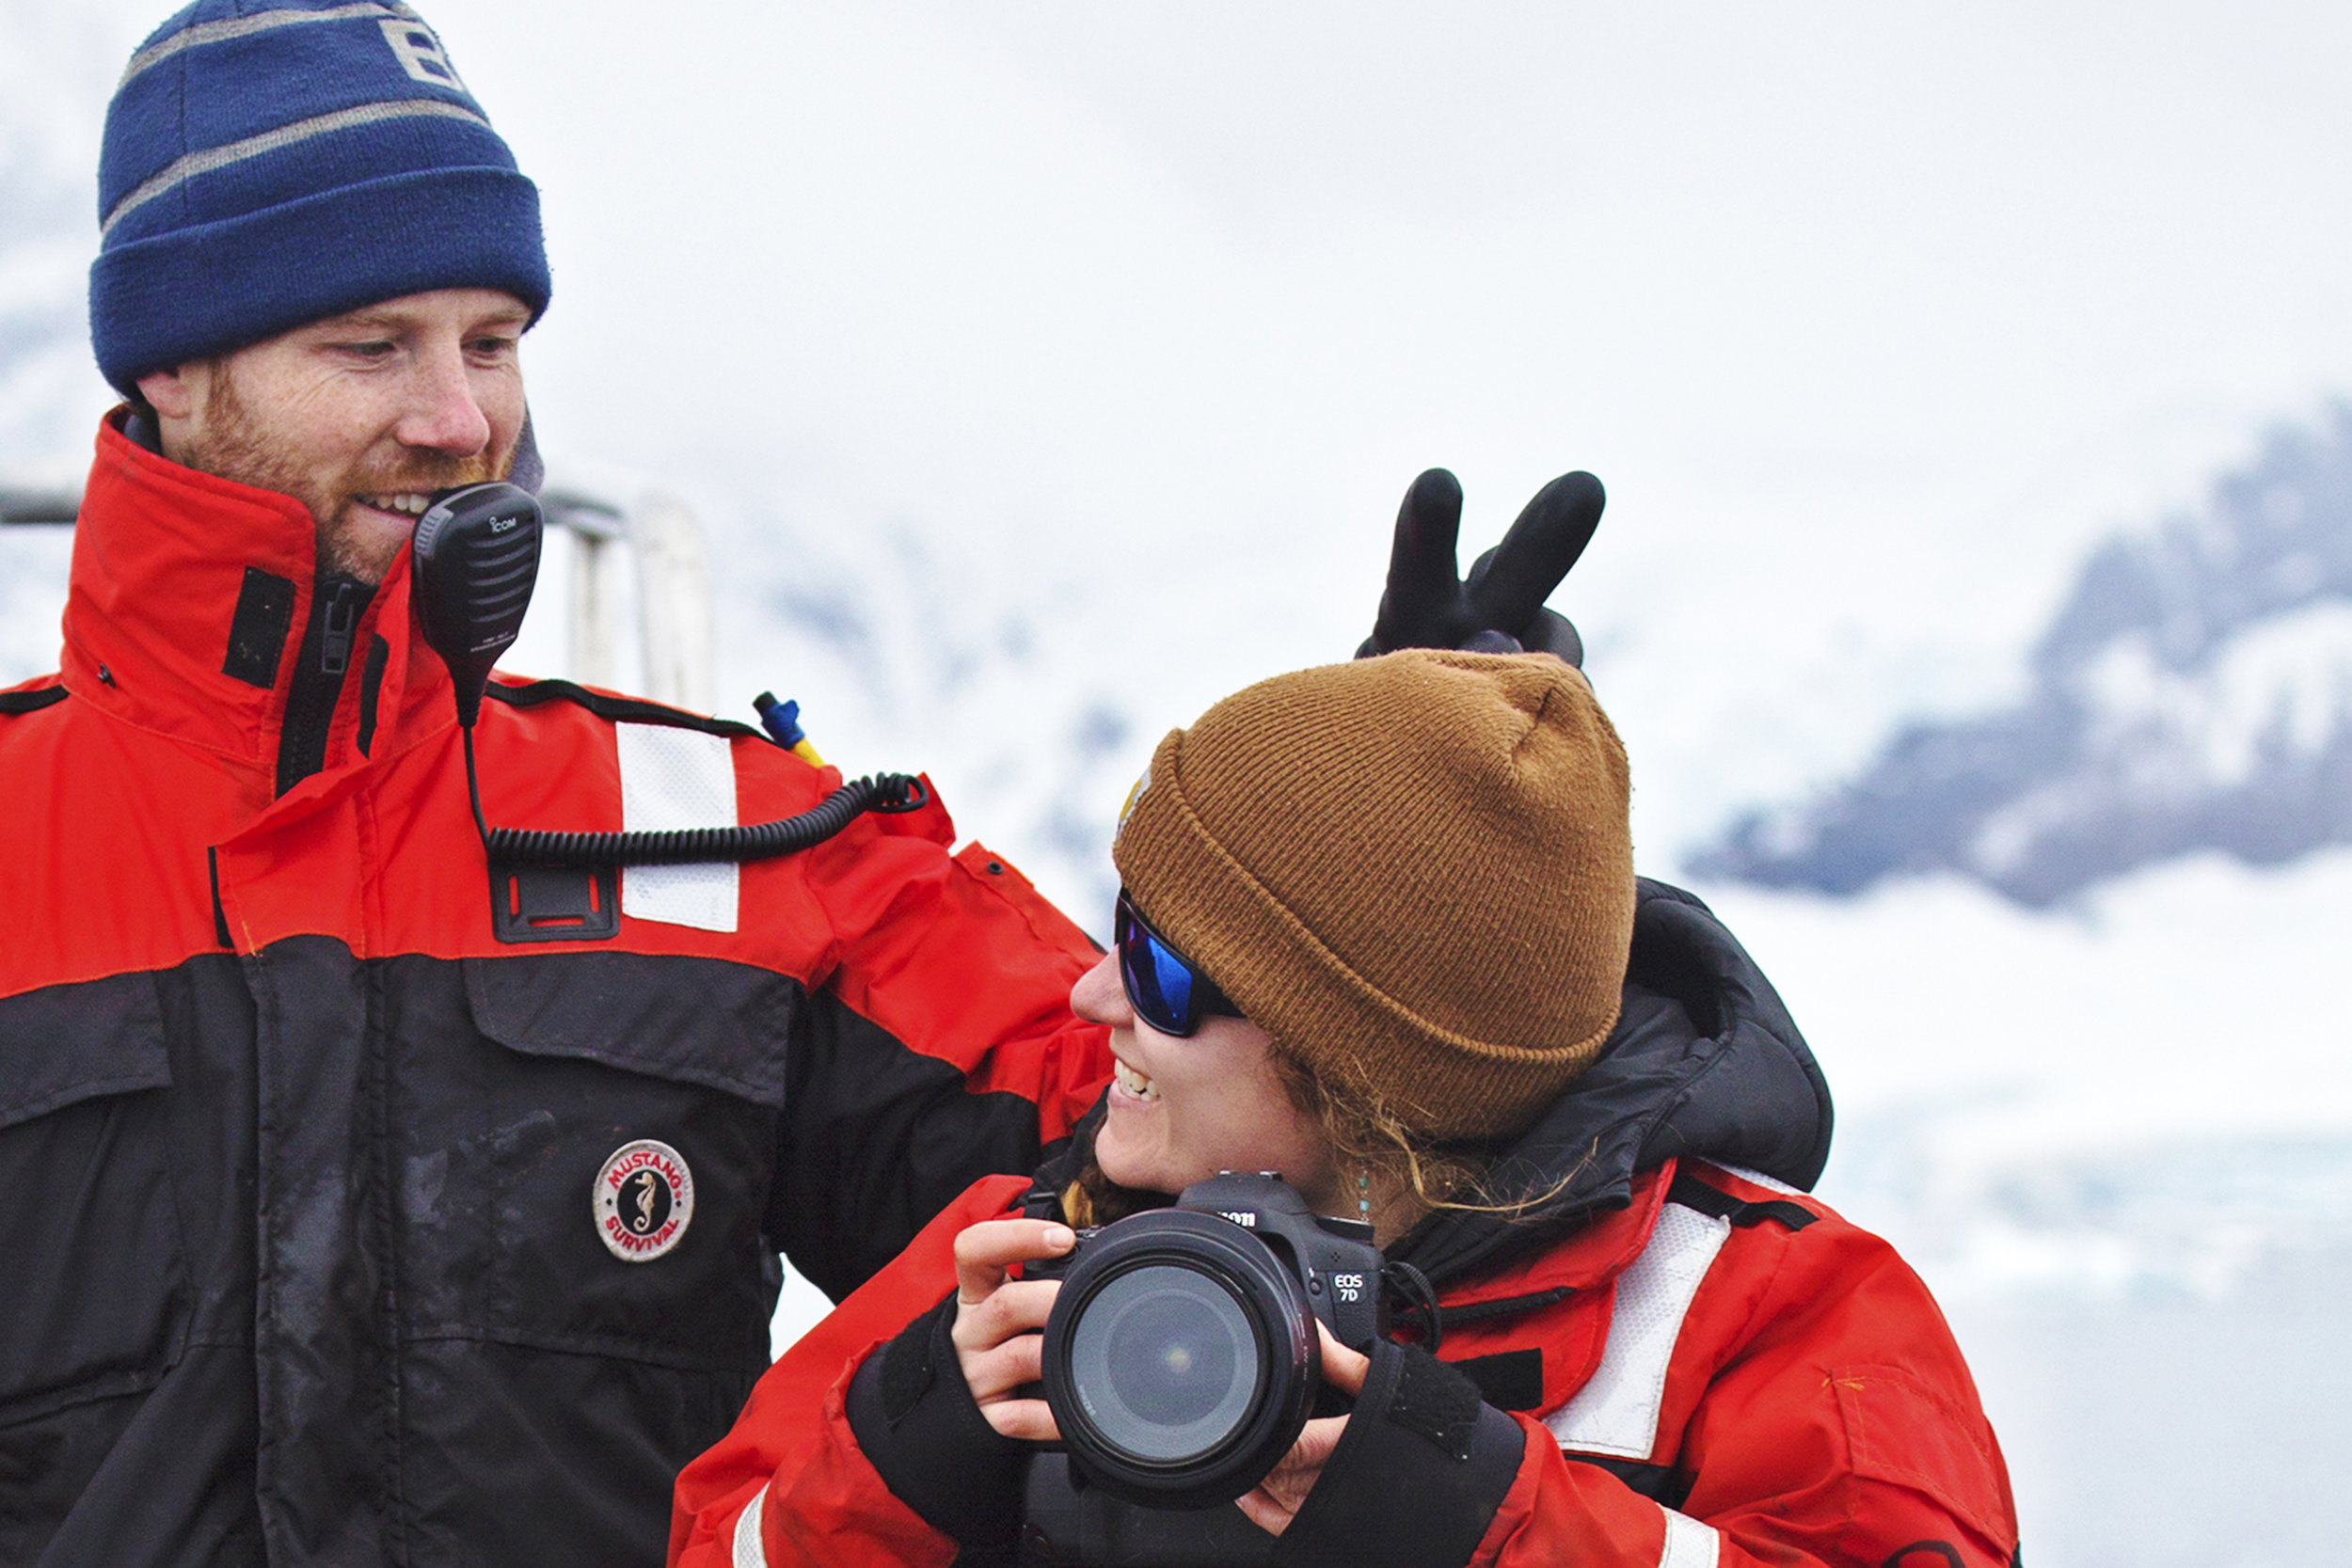 Laughing at a meddlesome marine technician while working in Antarctica.